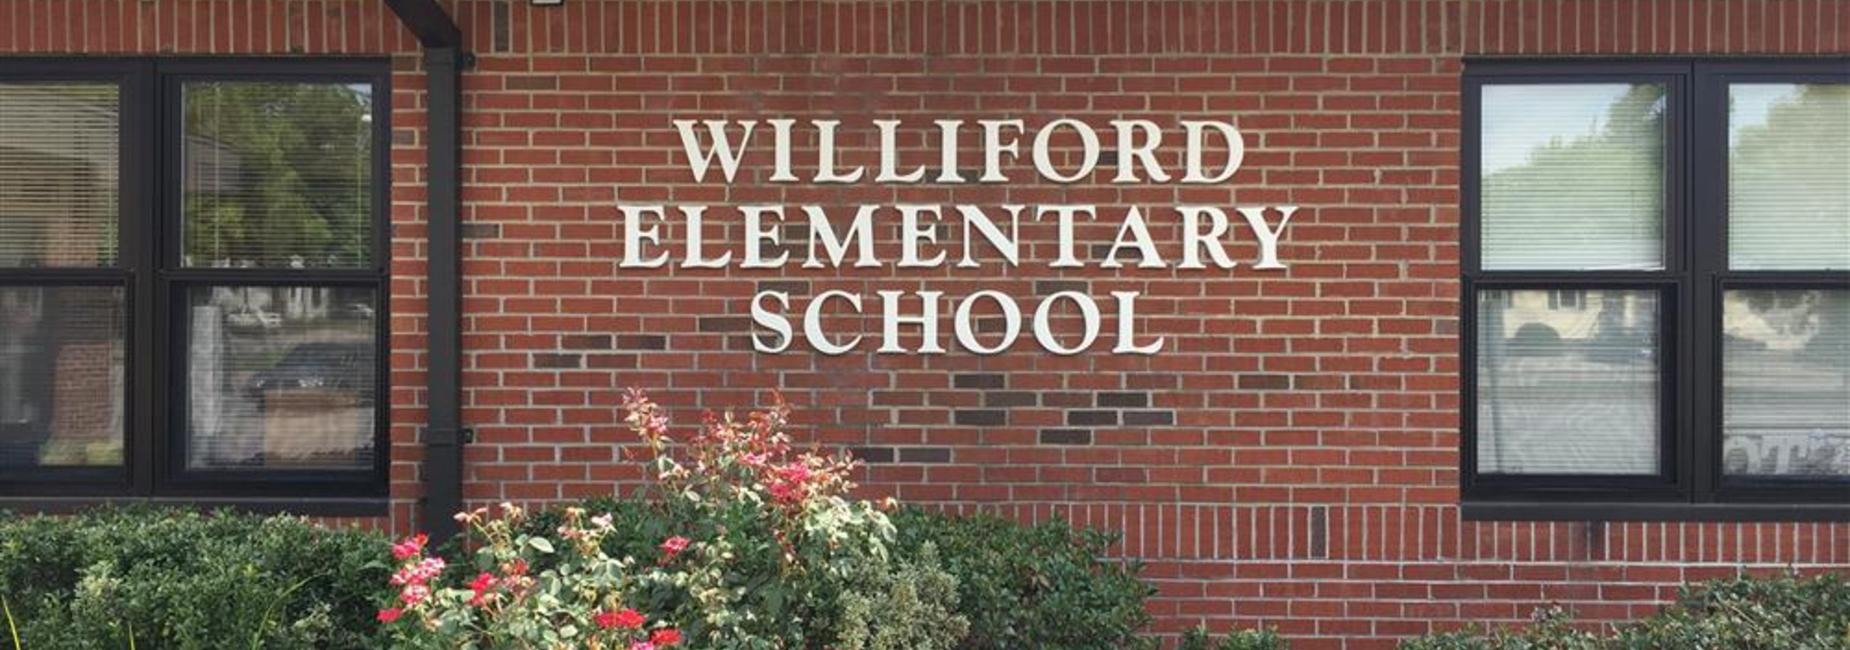 Welcome to Williford Elementary School!